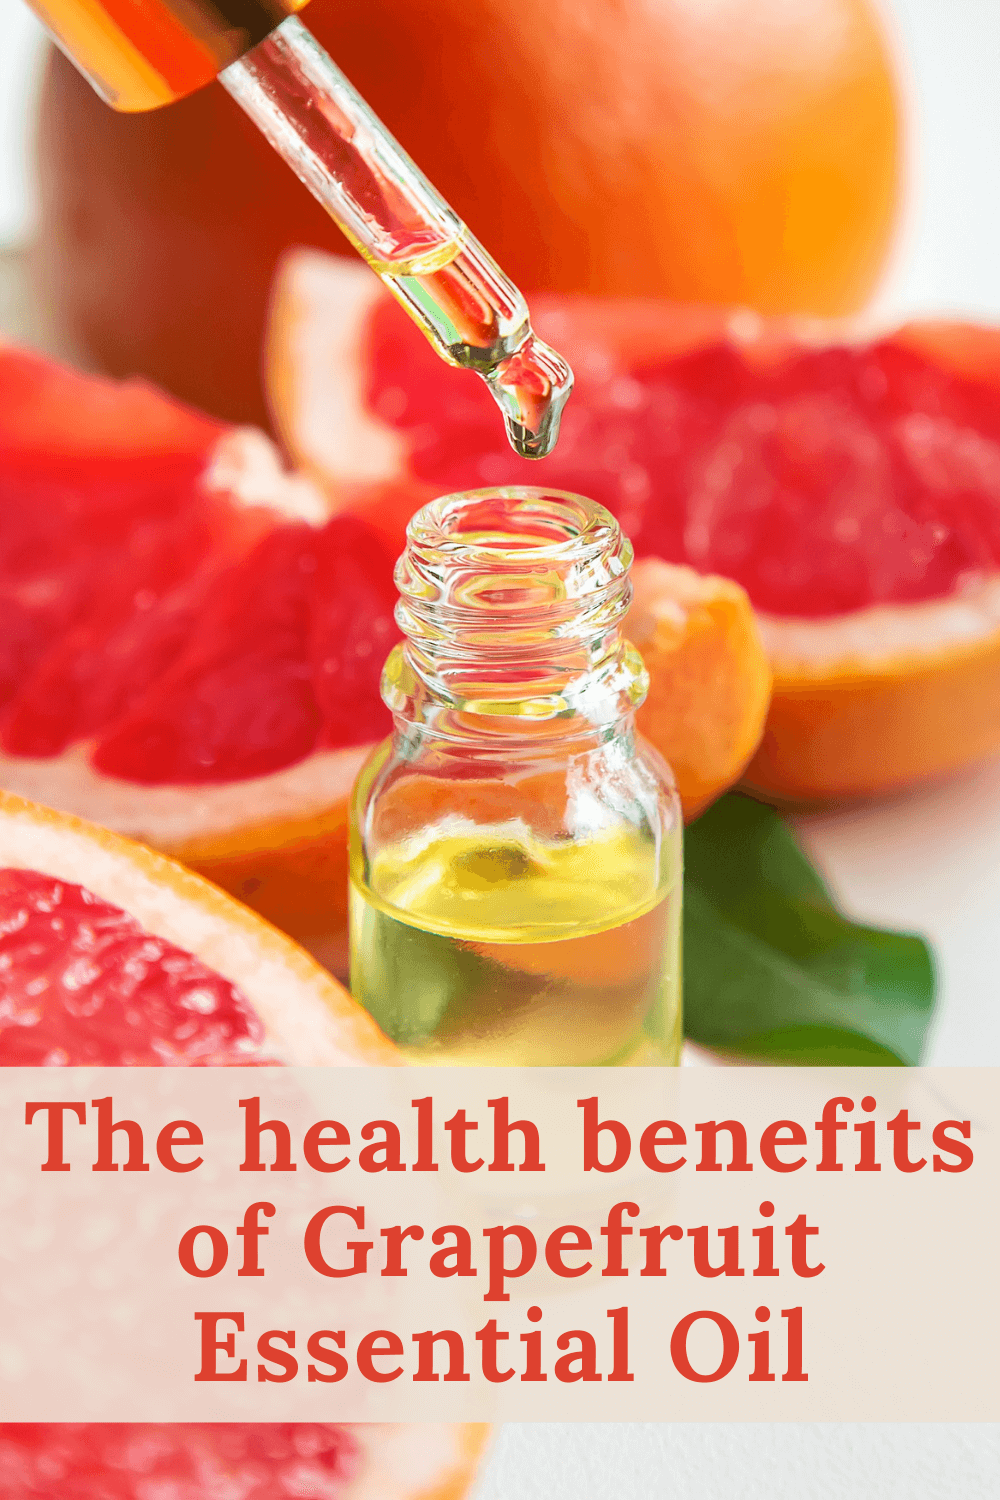 What happens to your body if you start using grapefruit essential oil daily?